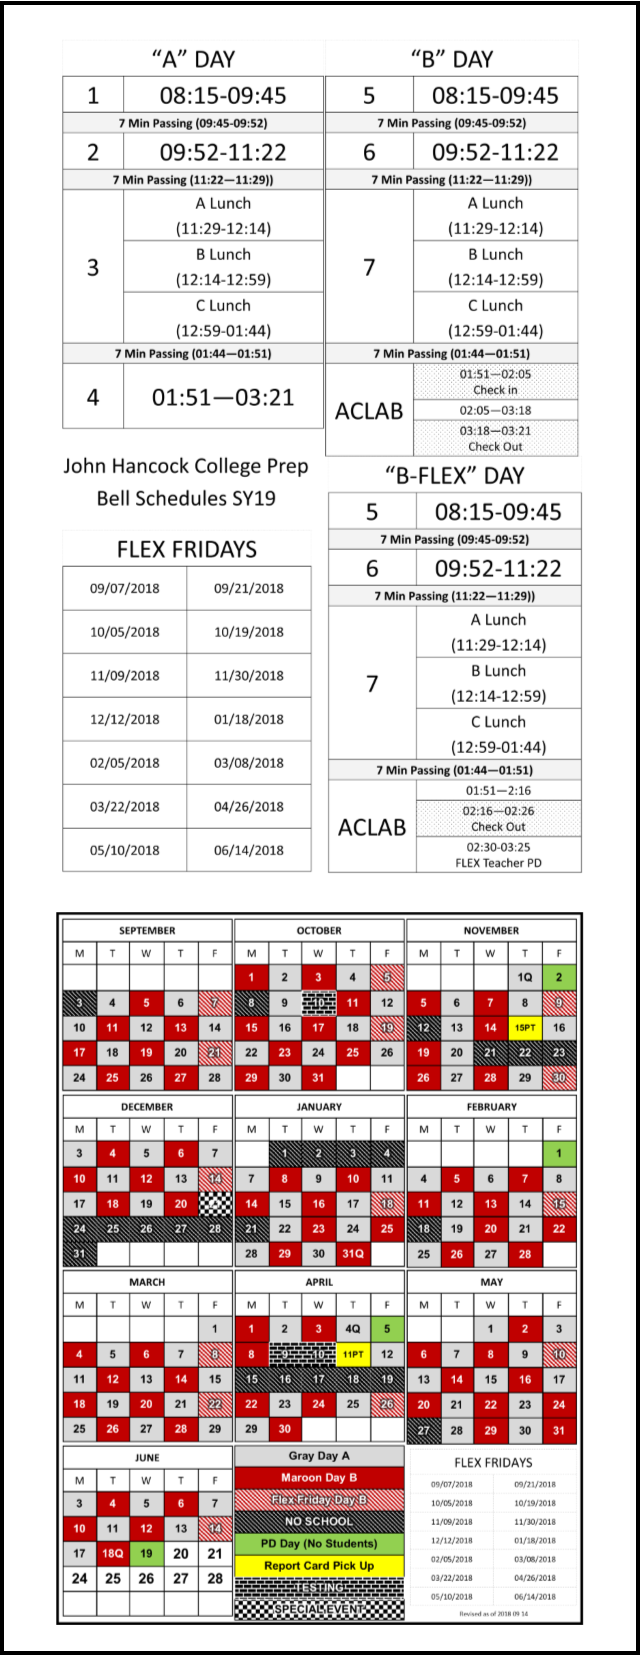 This is the bell schedules governing A Days and B Days at John Hancock College Prep High School in Chicago, IL